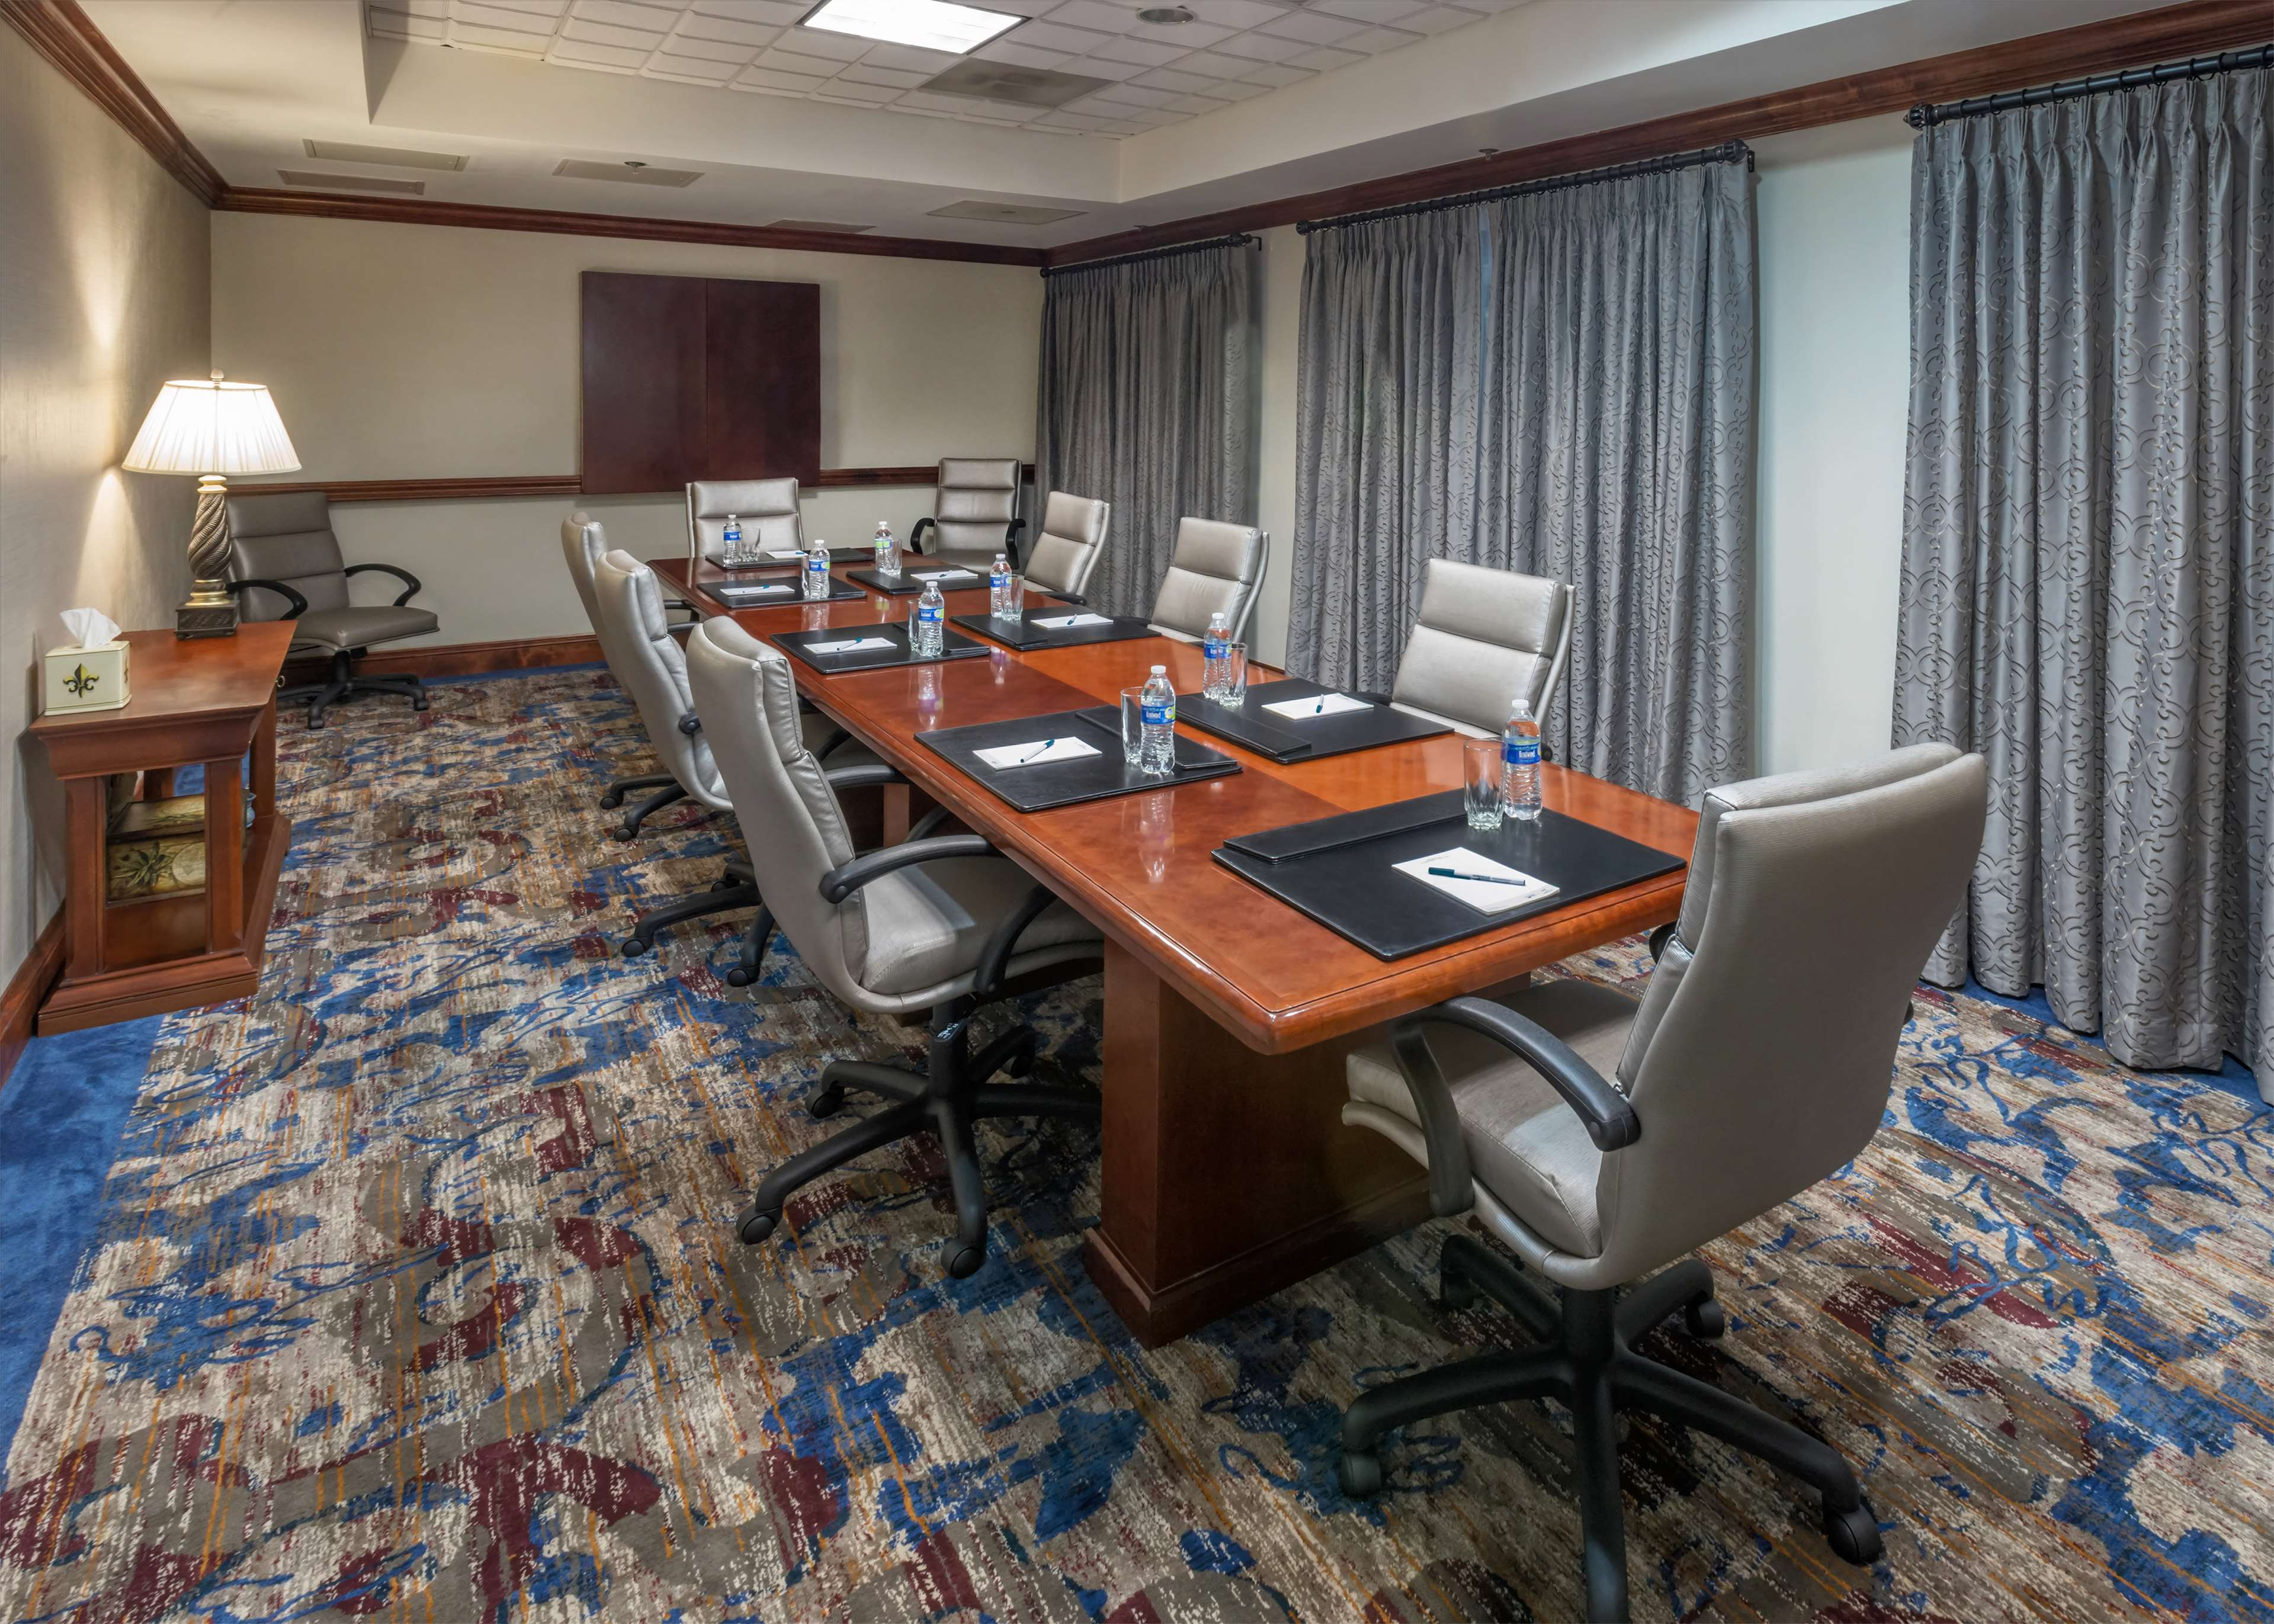 Homewood Suites by Hilton New Orleans image 26